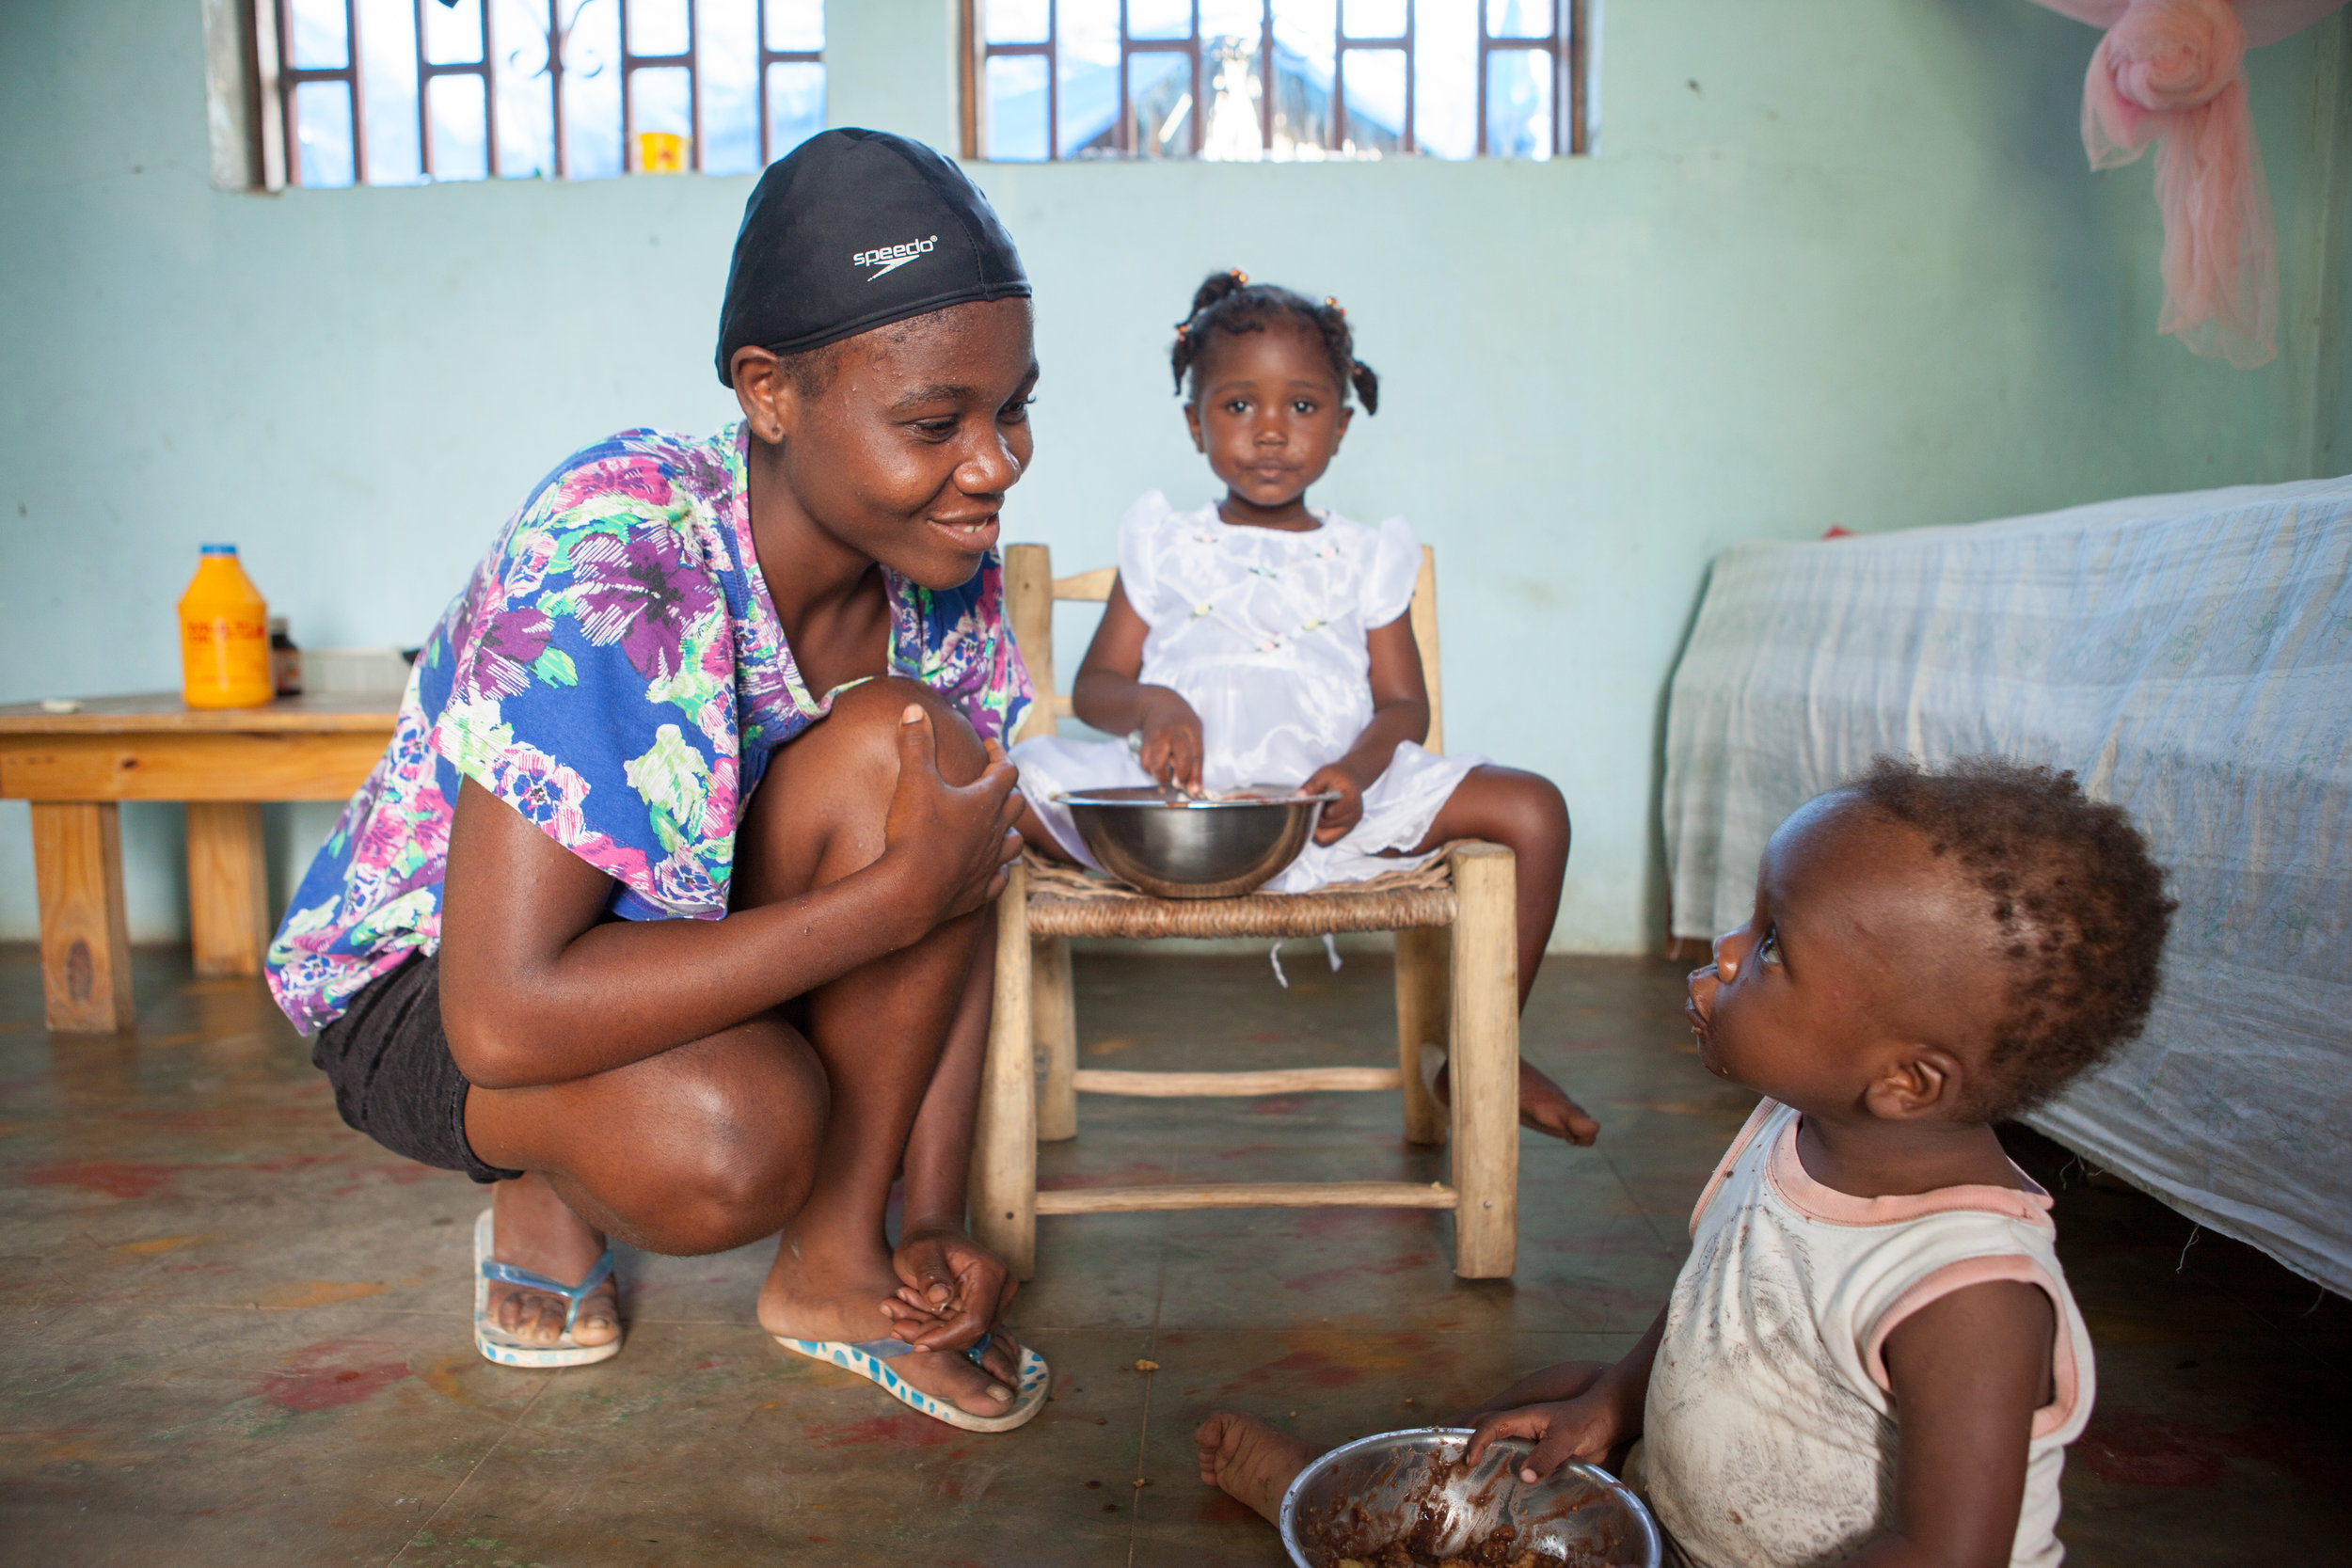 9. Unclaimed - I know midwifery care in Northern Haiti will save lives and creates healthier families.